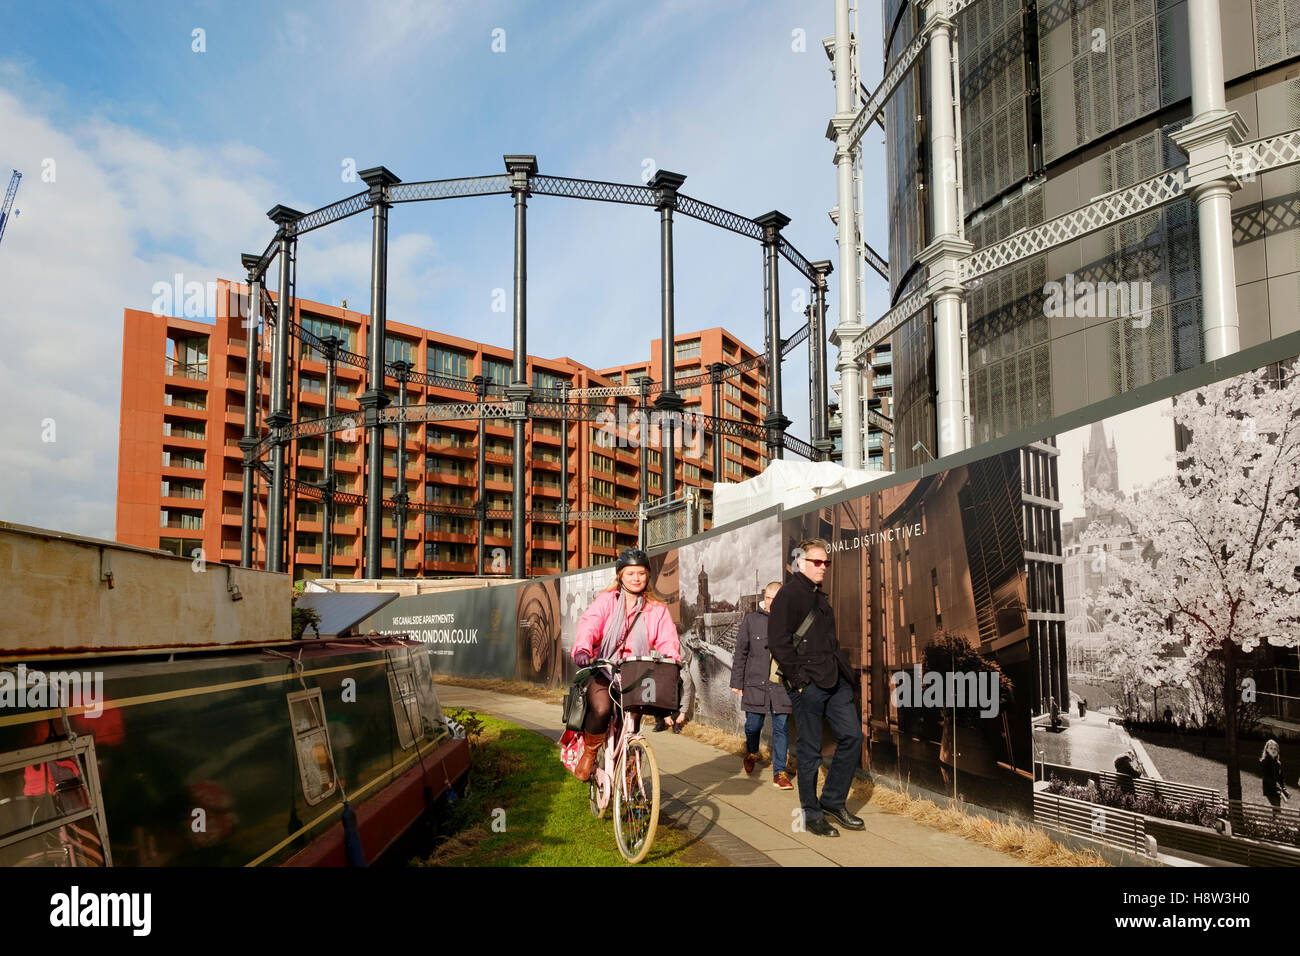 People on the towpath of the Regents Canal at St Pancras passing the Gasholder Park development. Kings Cross, London. - Stock Image